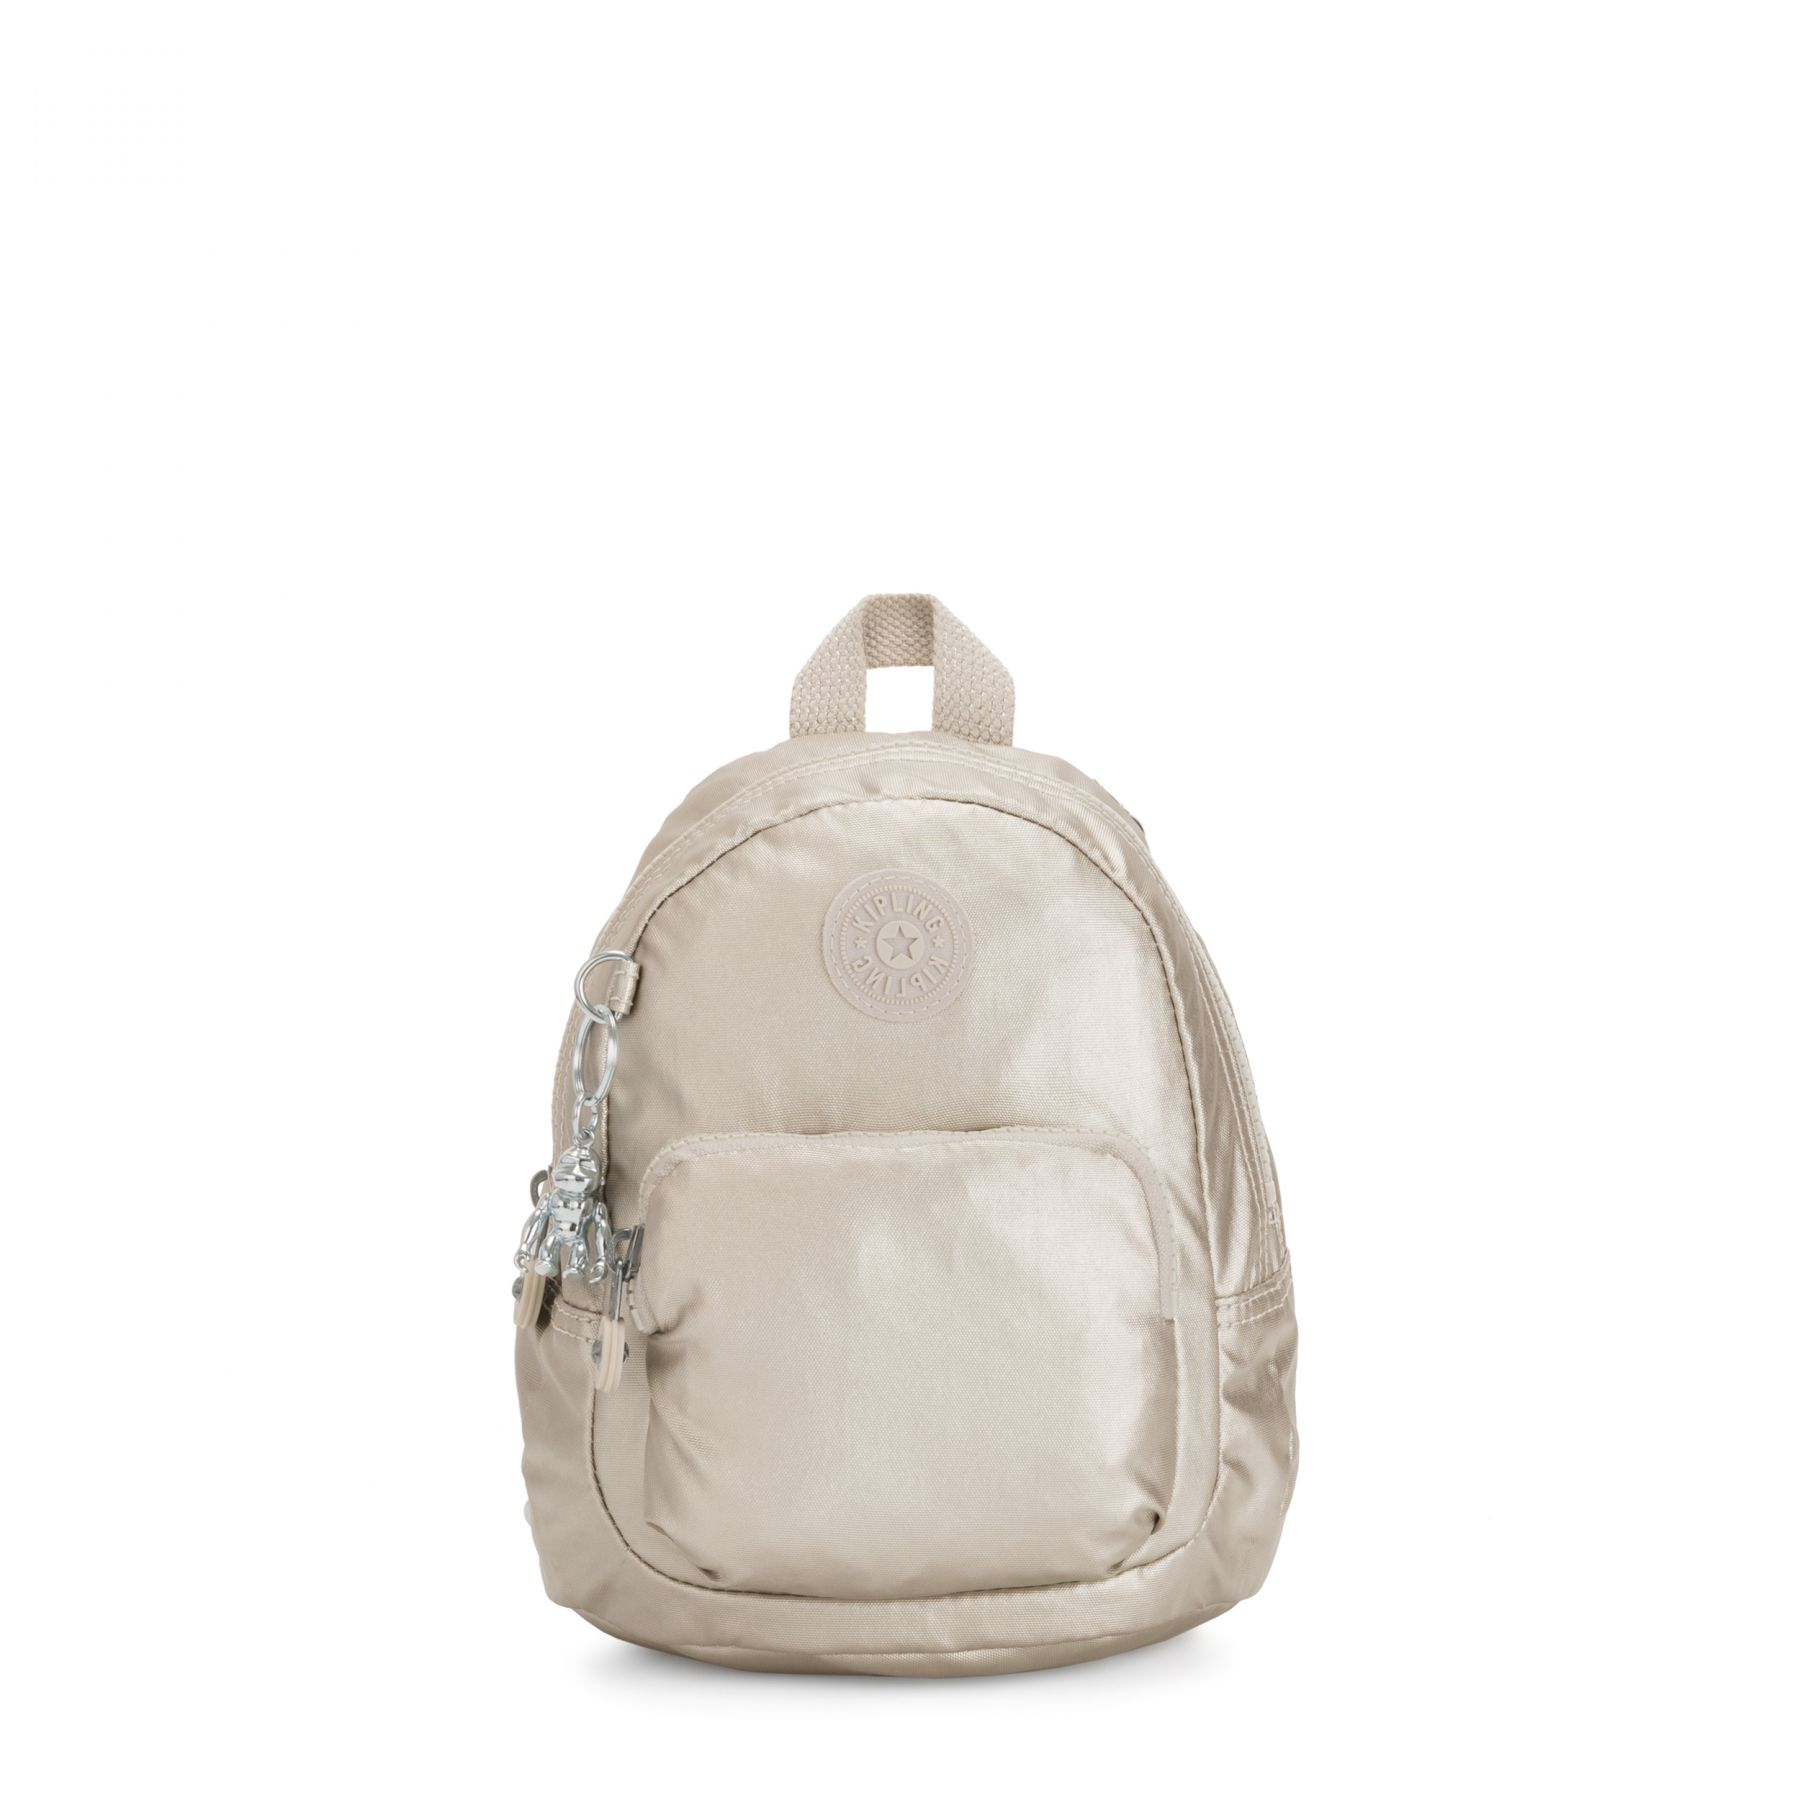 GLAYLA Latest Backpacks by Kipling - Front view